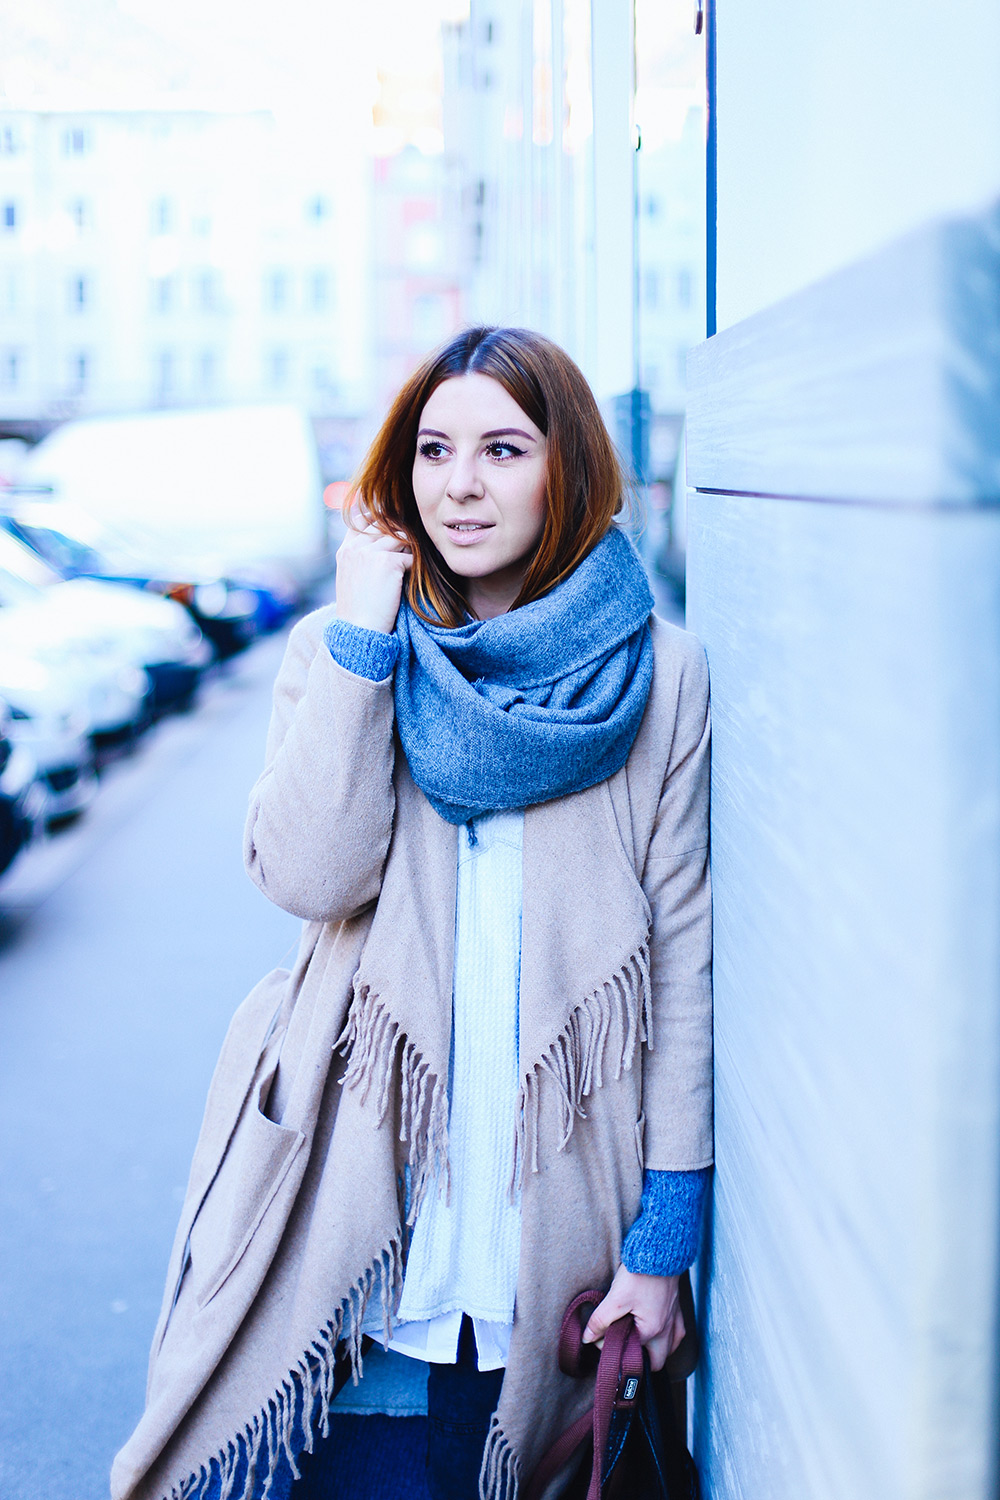 who is mocca, modeblogger, fashionblogger, influencer, wie geht layering?, lagenlook, zwiebellook, c&a boots, winteroutfit, asos fransenjacke, streetstyle, innsbruck, frenchie, fawn, whoismocca.com